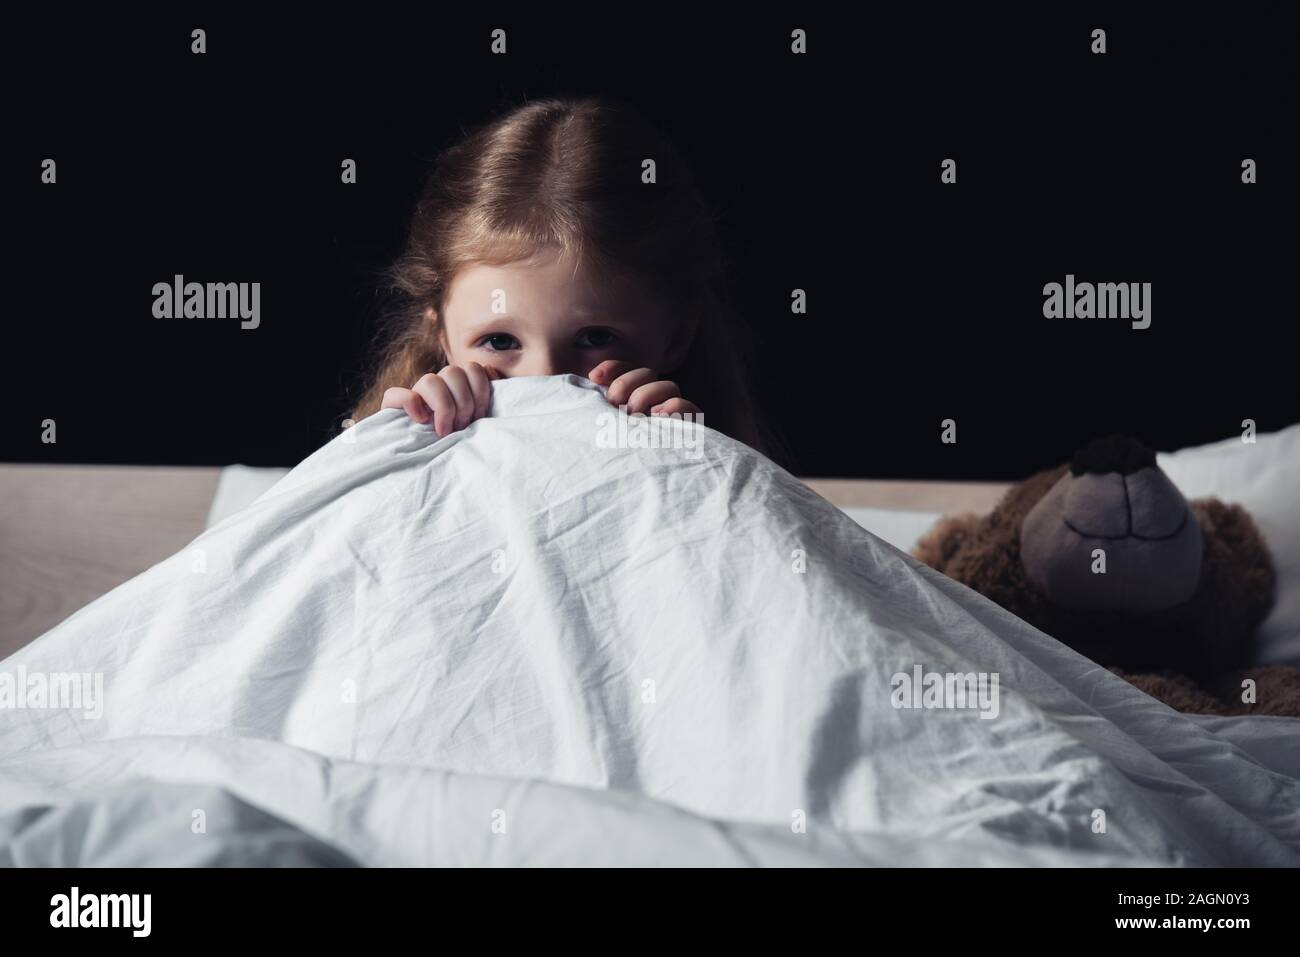 Scared Child Hiding Under Blanket While Sitting On Bedding Near Teddy Bear Isolated On Black Stock Photo Alamy